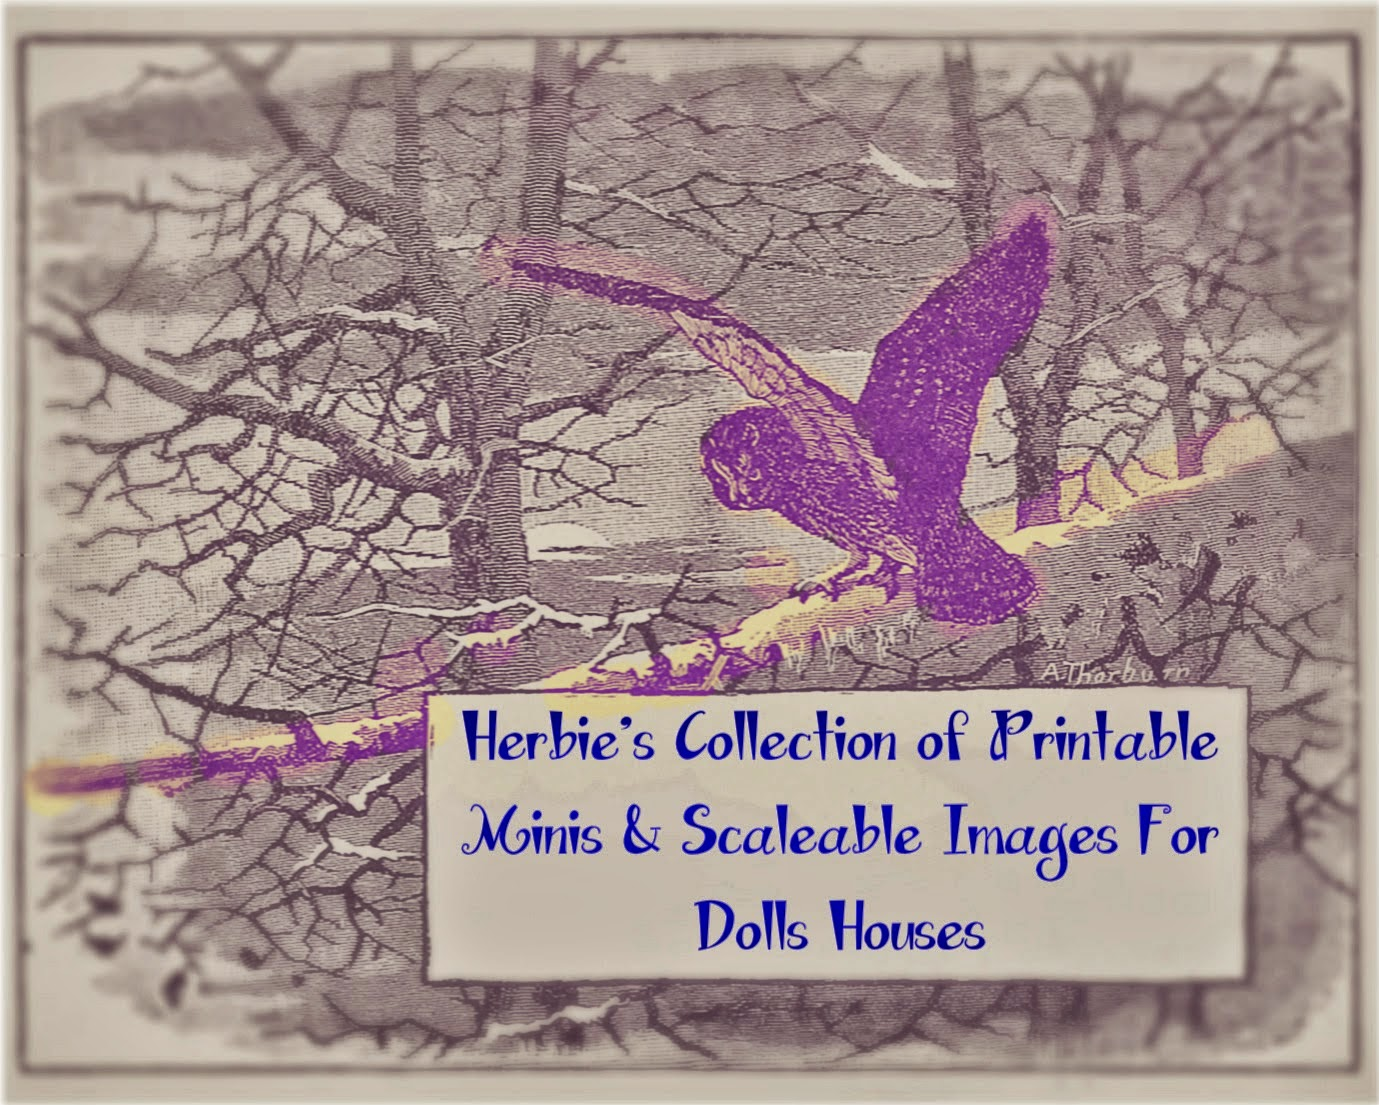 For Dollshouse Printables go to: